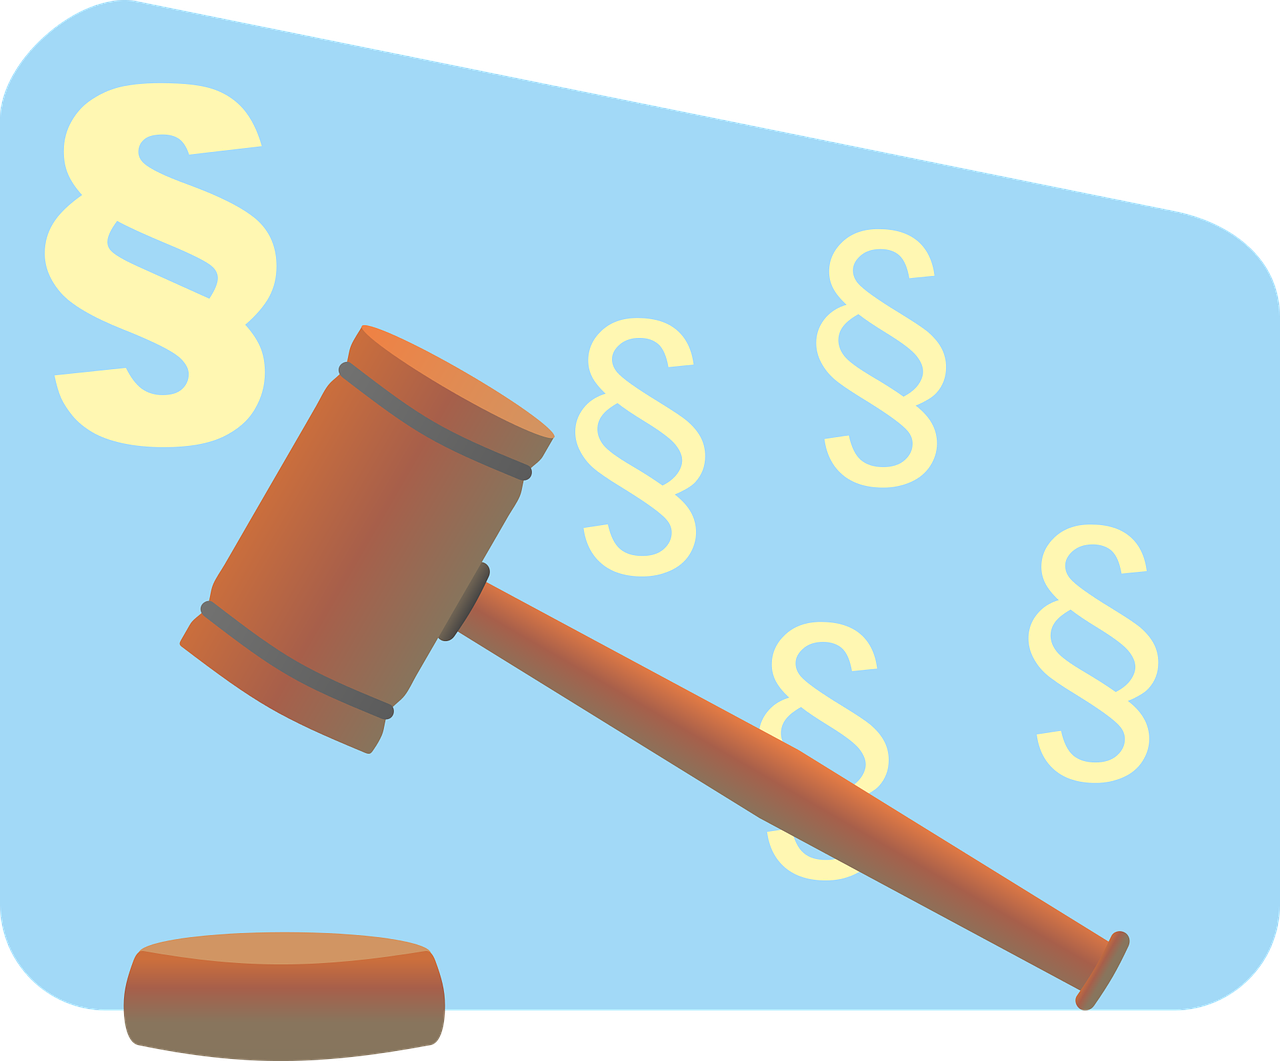 law-1898965_1280.png